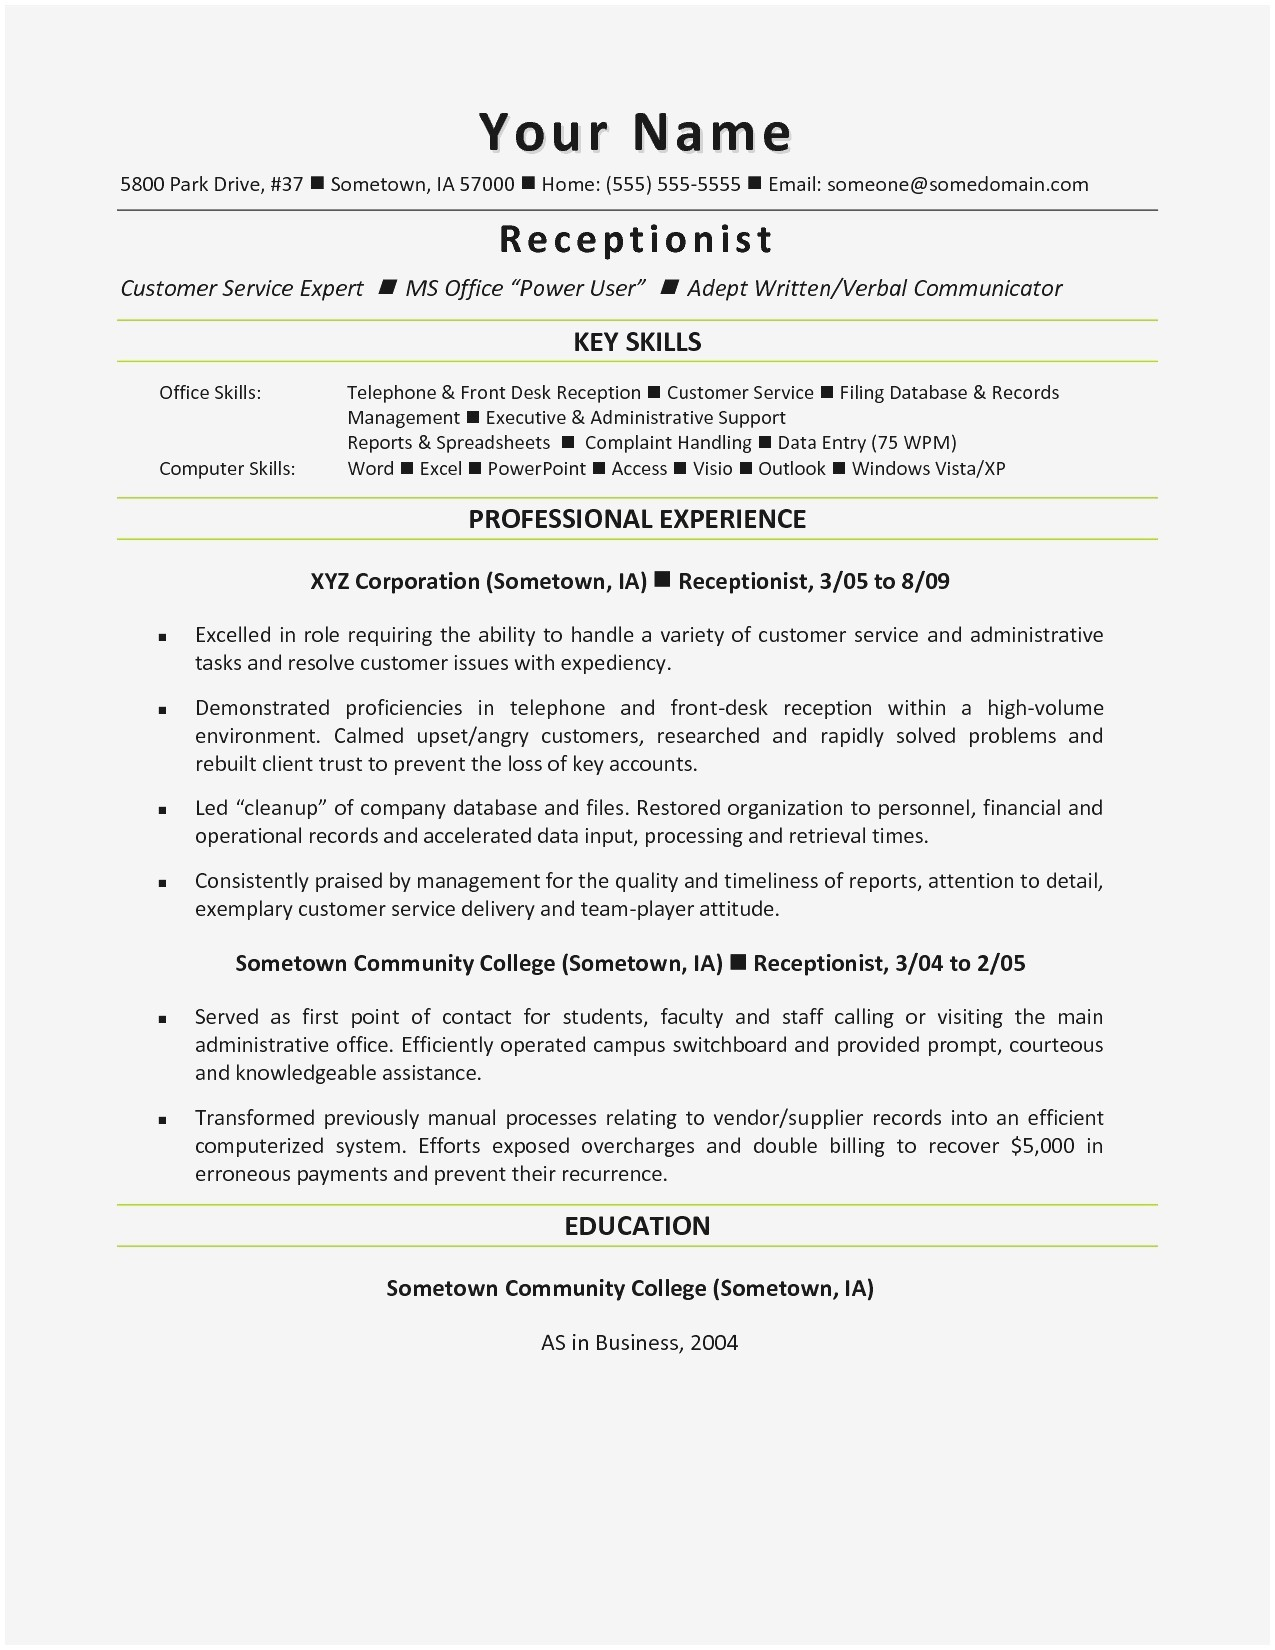 Customer Service Cover Letter Template Word - Customer Service Cover Letter Template Cover Letter Examples for